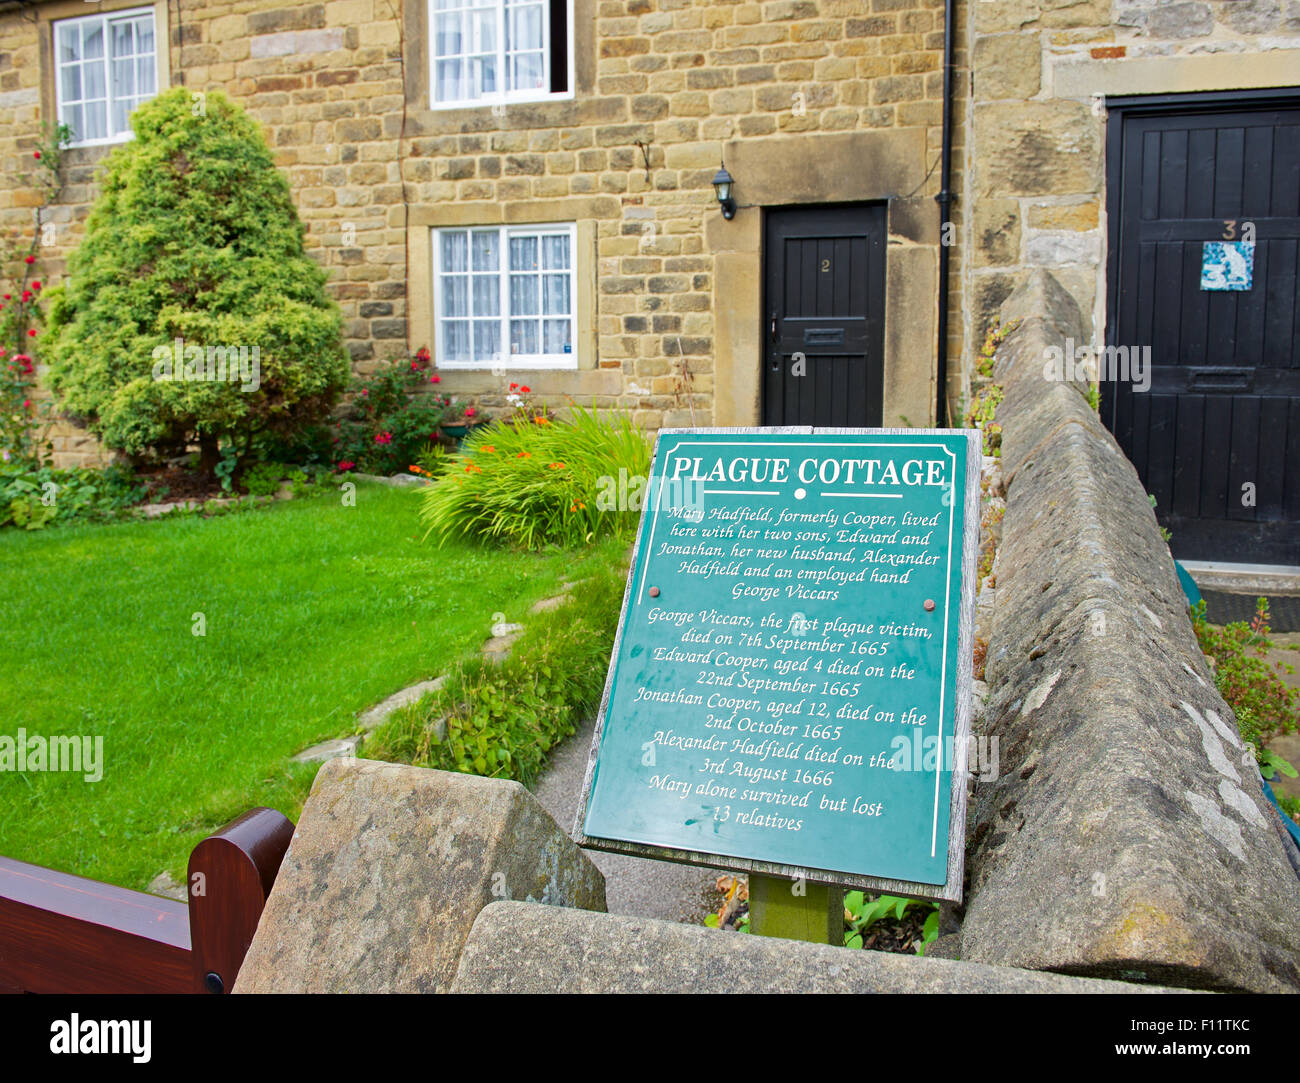 One of the plague houses in the village of Eyam, Peak National Park, Derbyshire, England UK - Stock Image